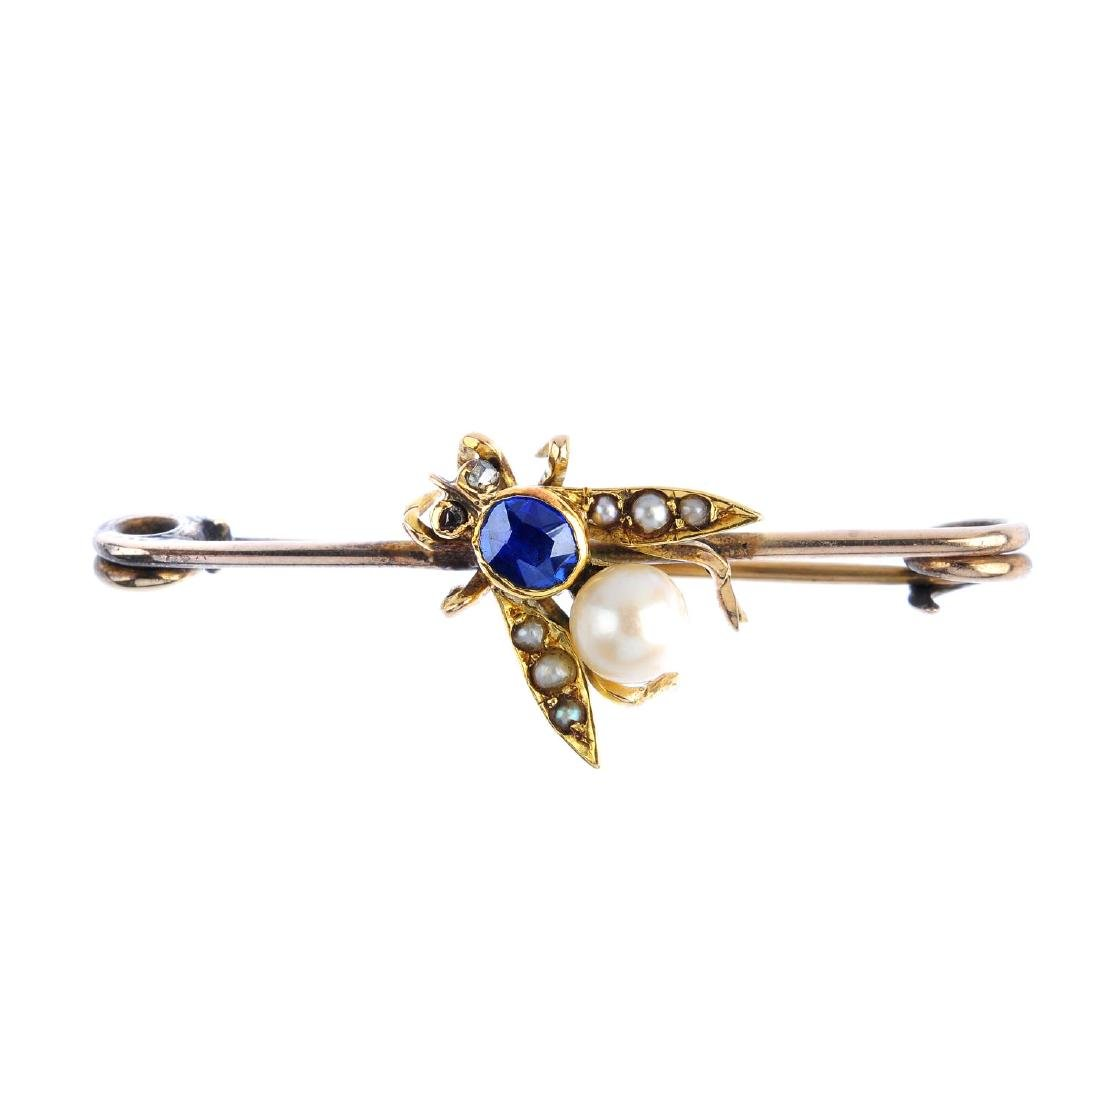 A late Victorian gold, sapphire and split pearl fly